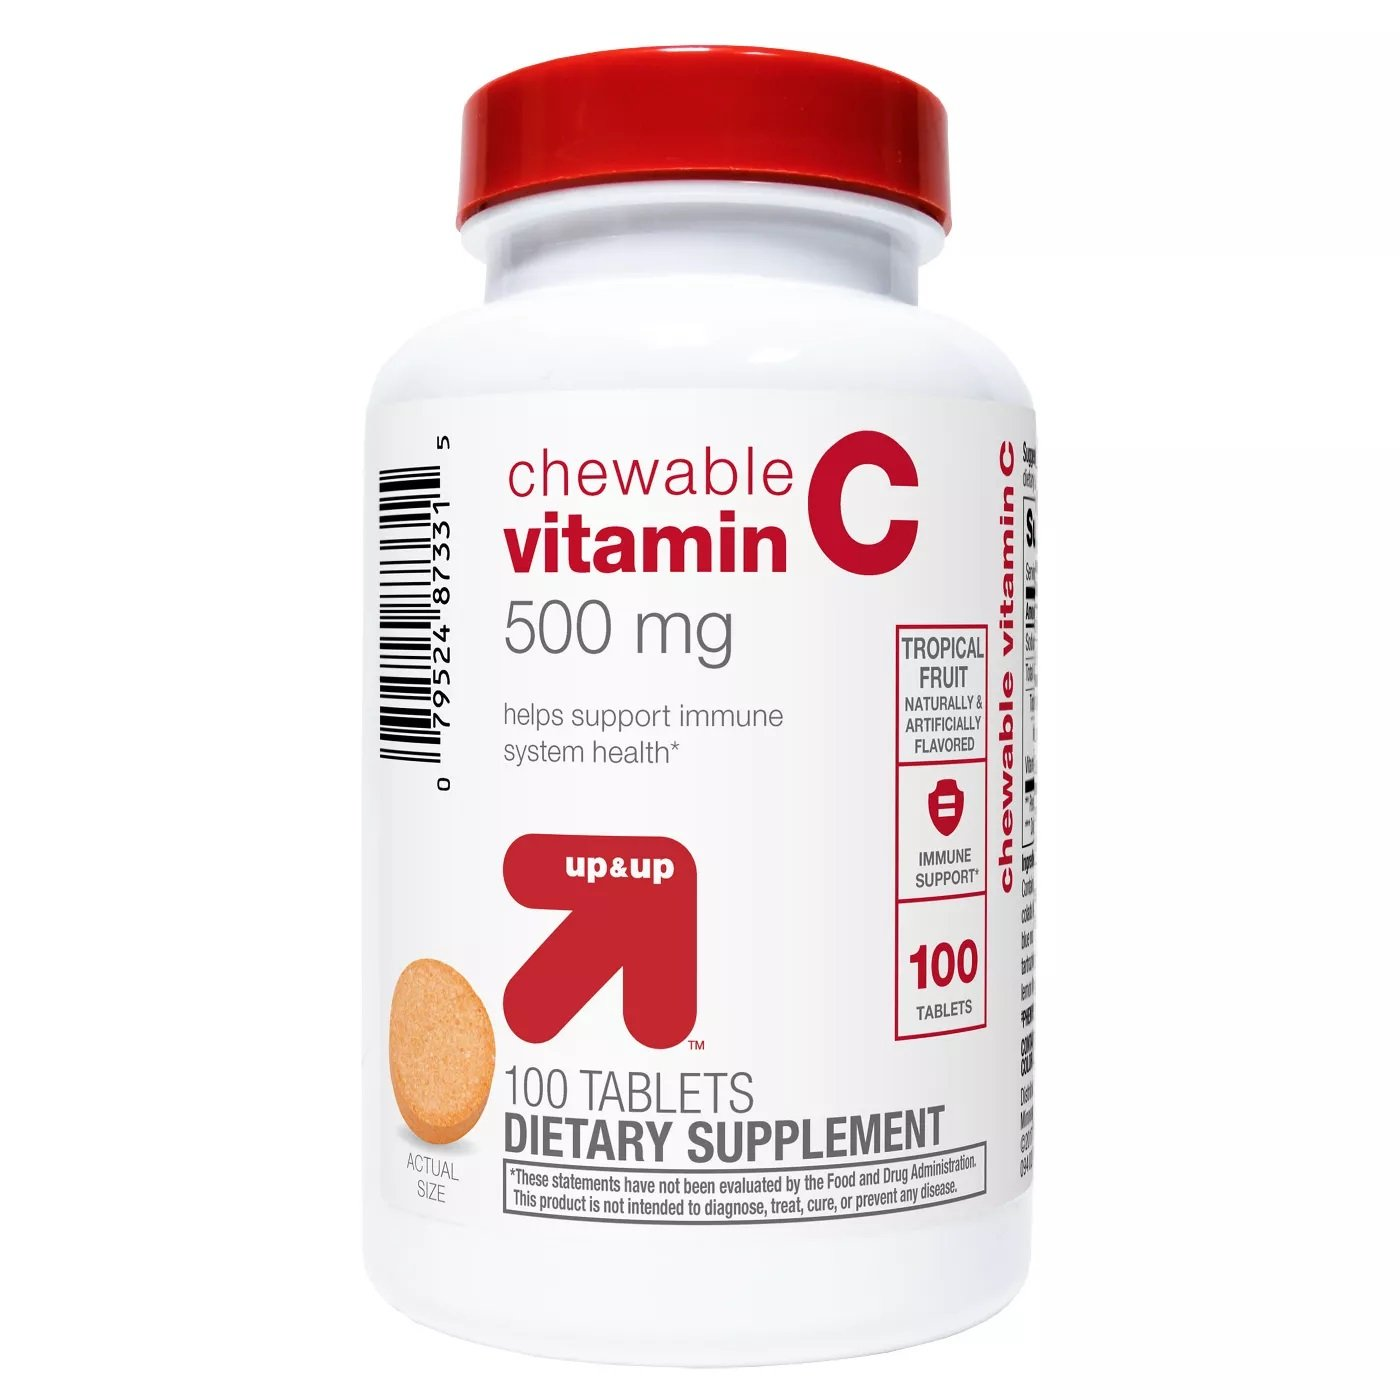 Vitamin C Chewable Tablets - Tropical Fruit - 100 Count - up & up